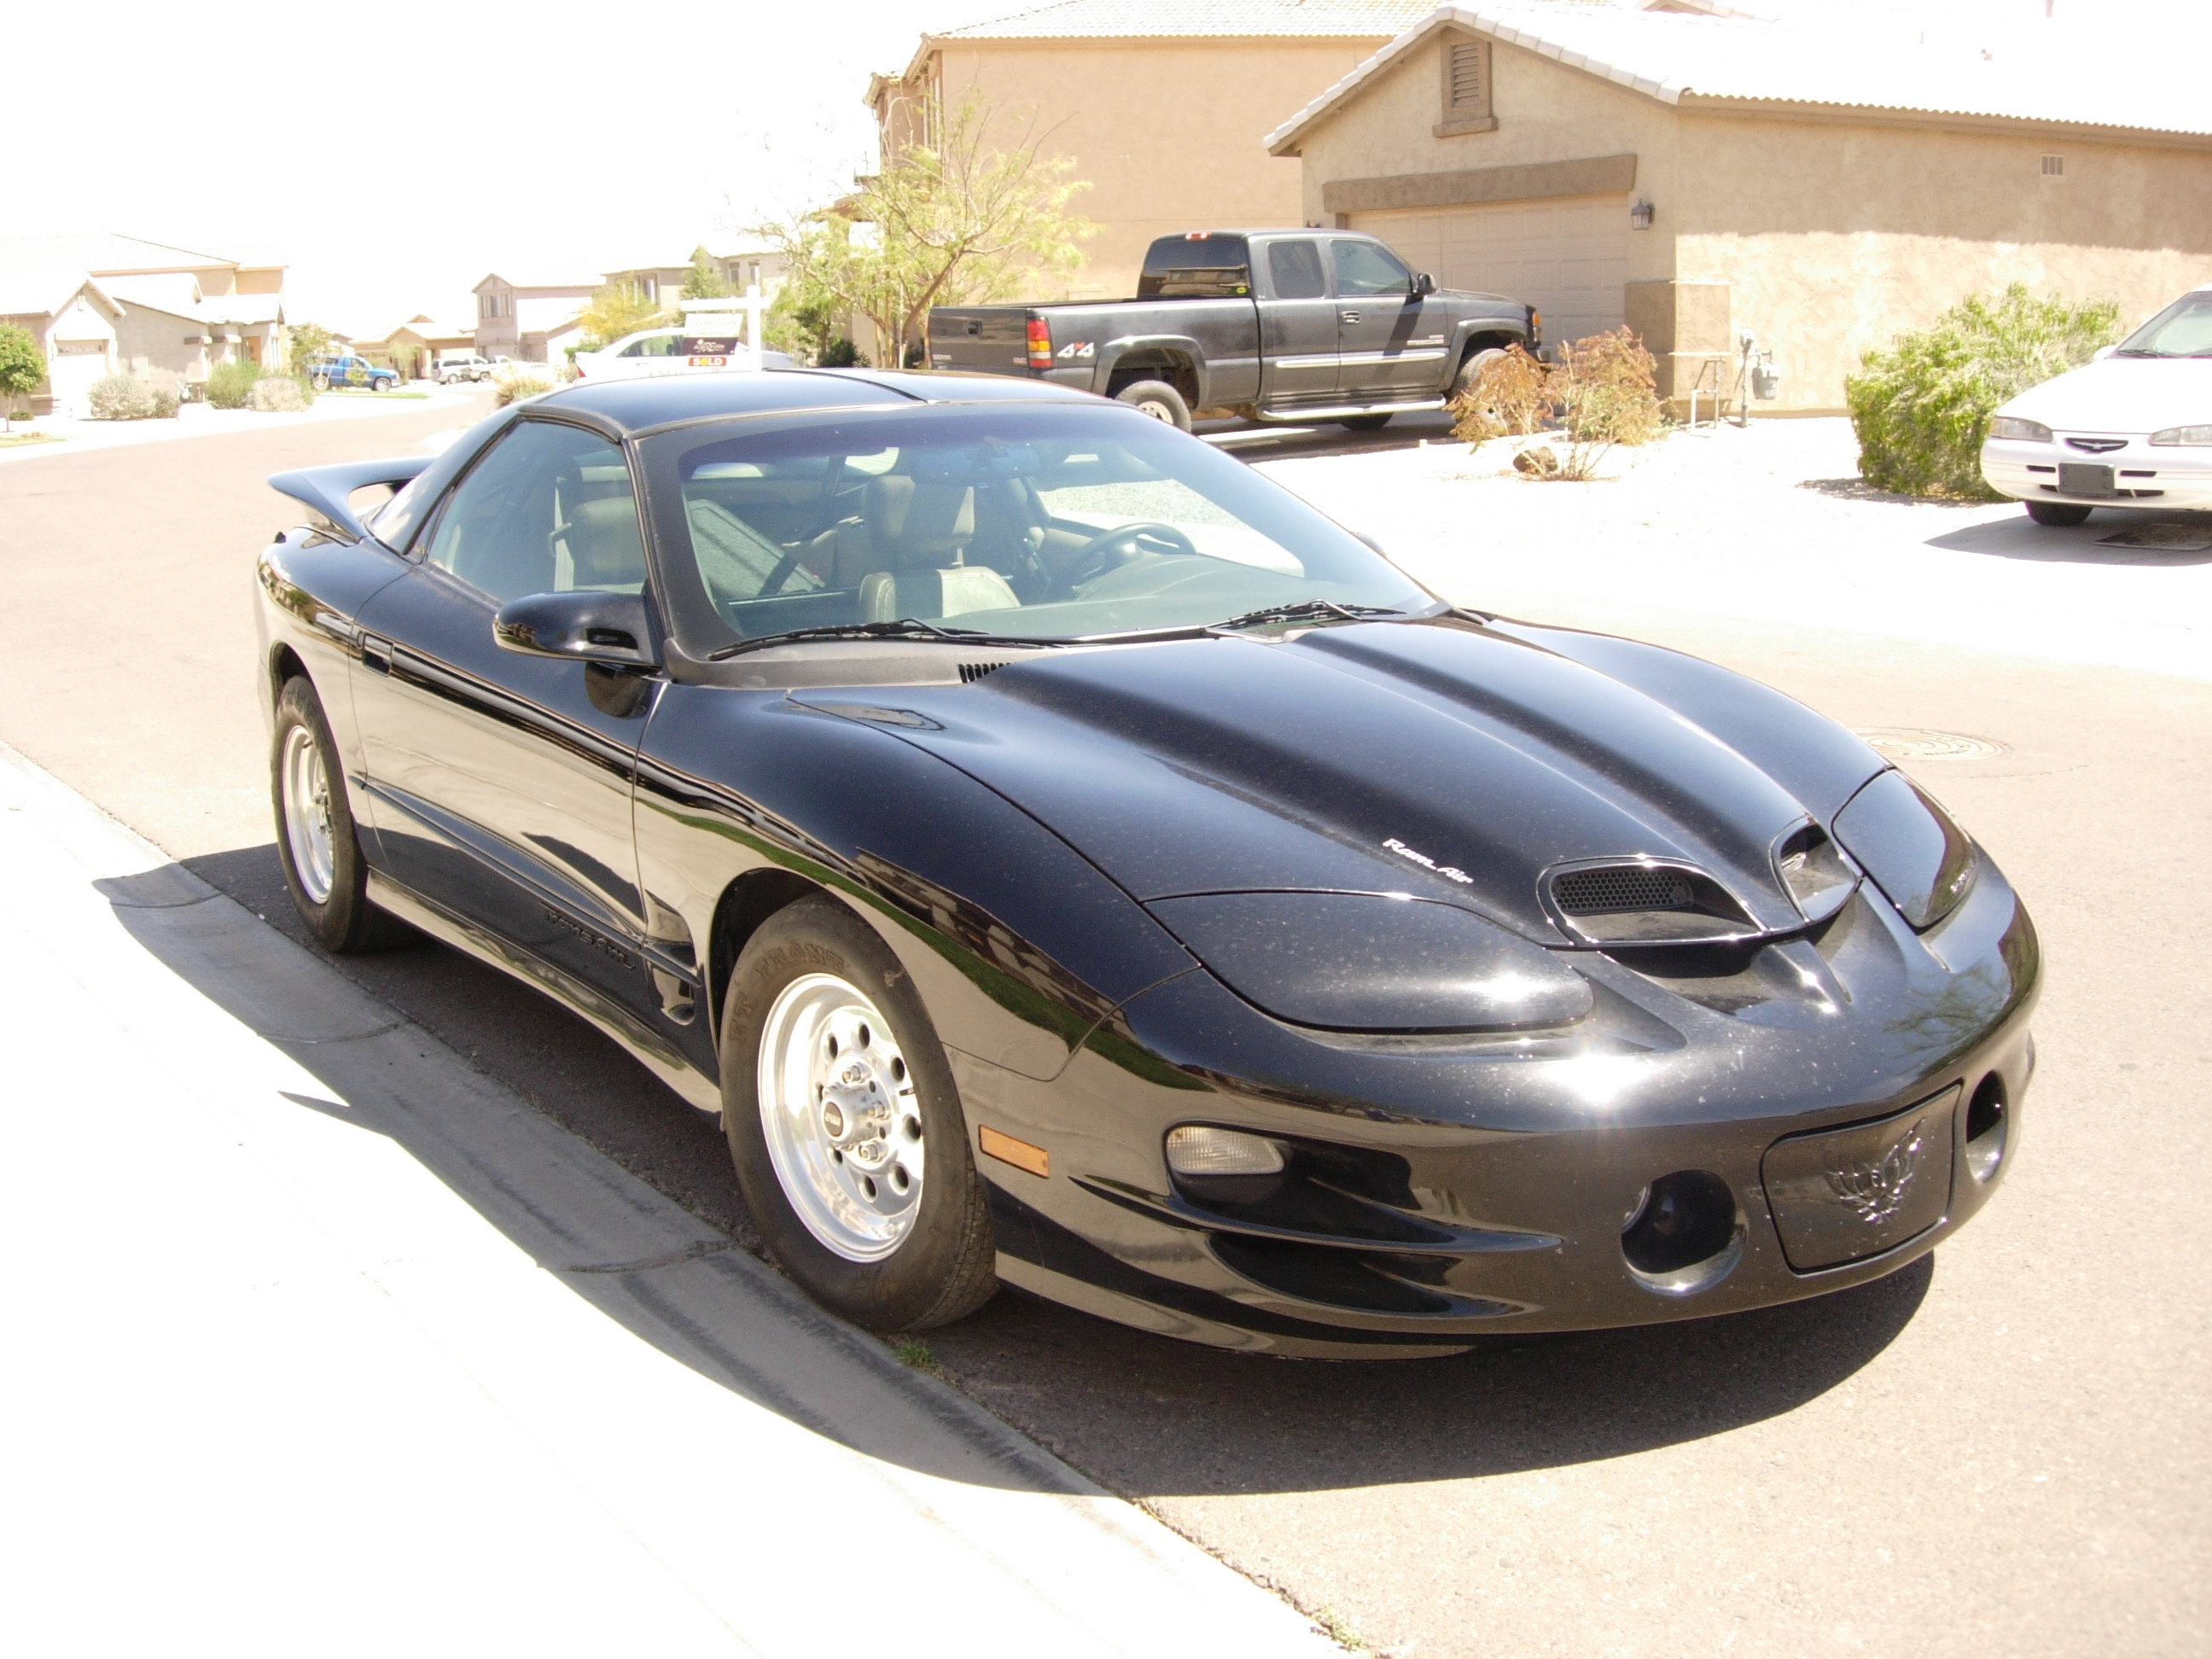 jim 39 s 1998 trans am ws6 race car. Black Bedroom Furniture Sets. Home Design Ideas